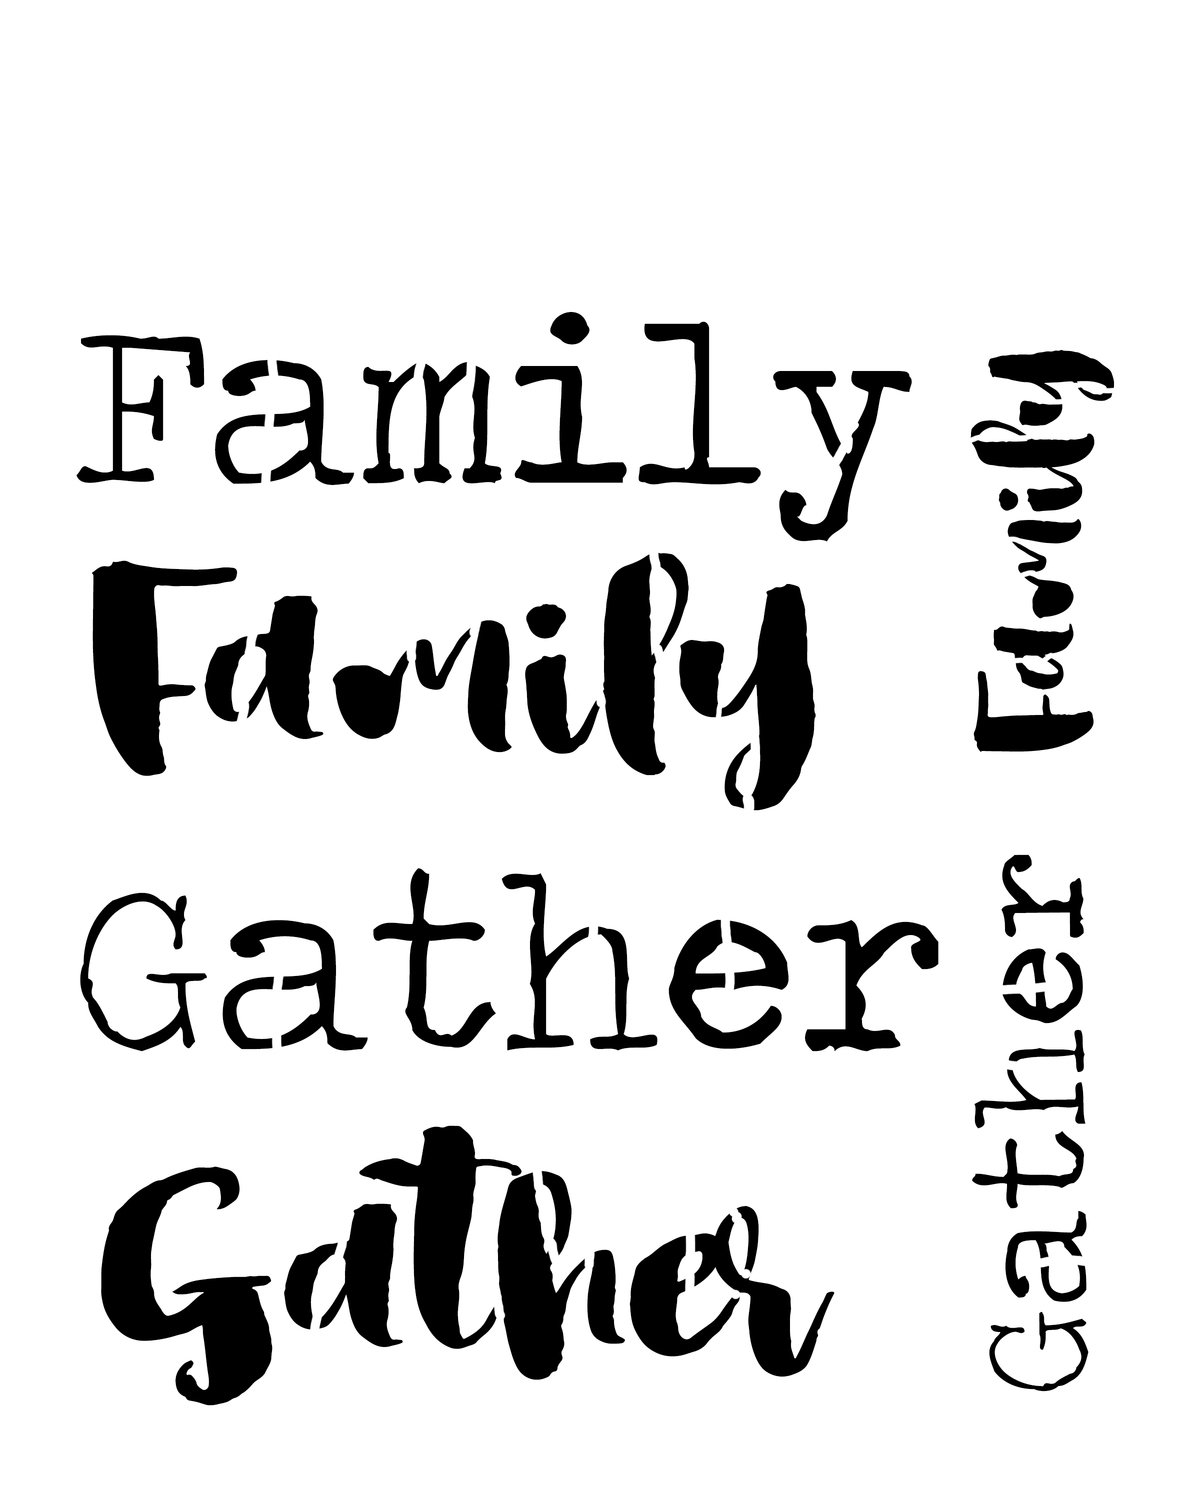 Gather family words 12x16 stencil